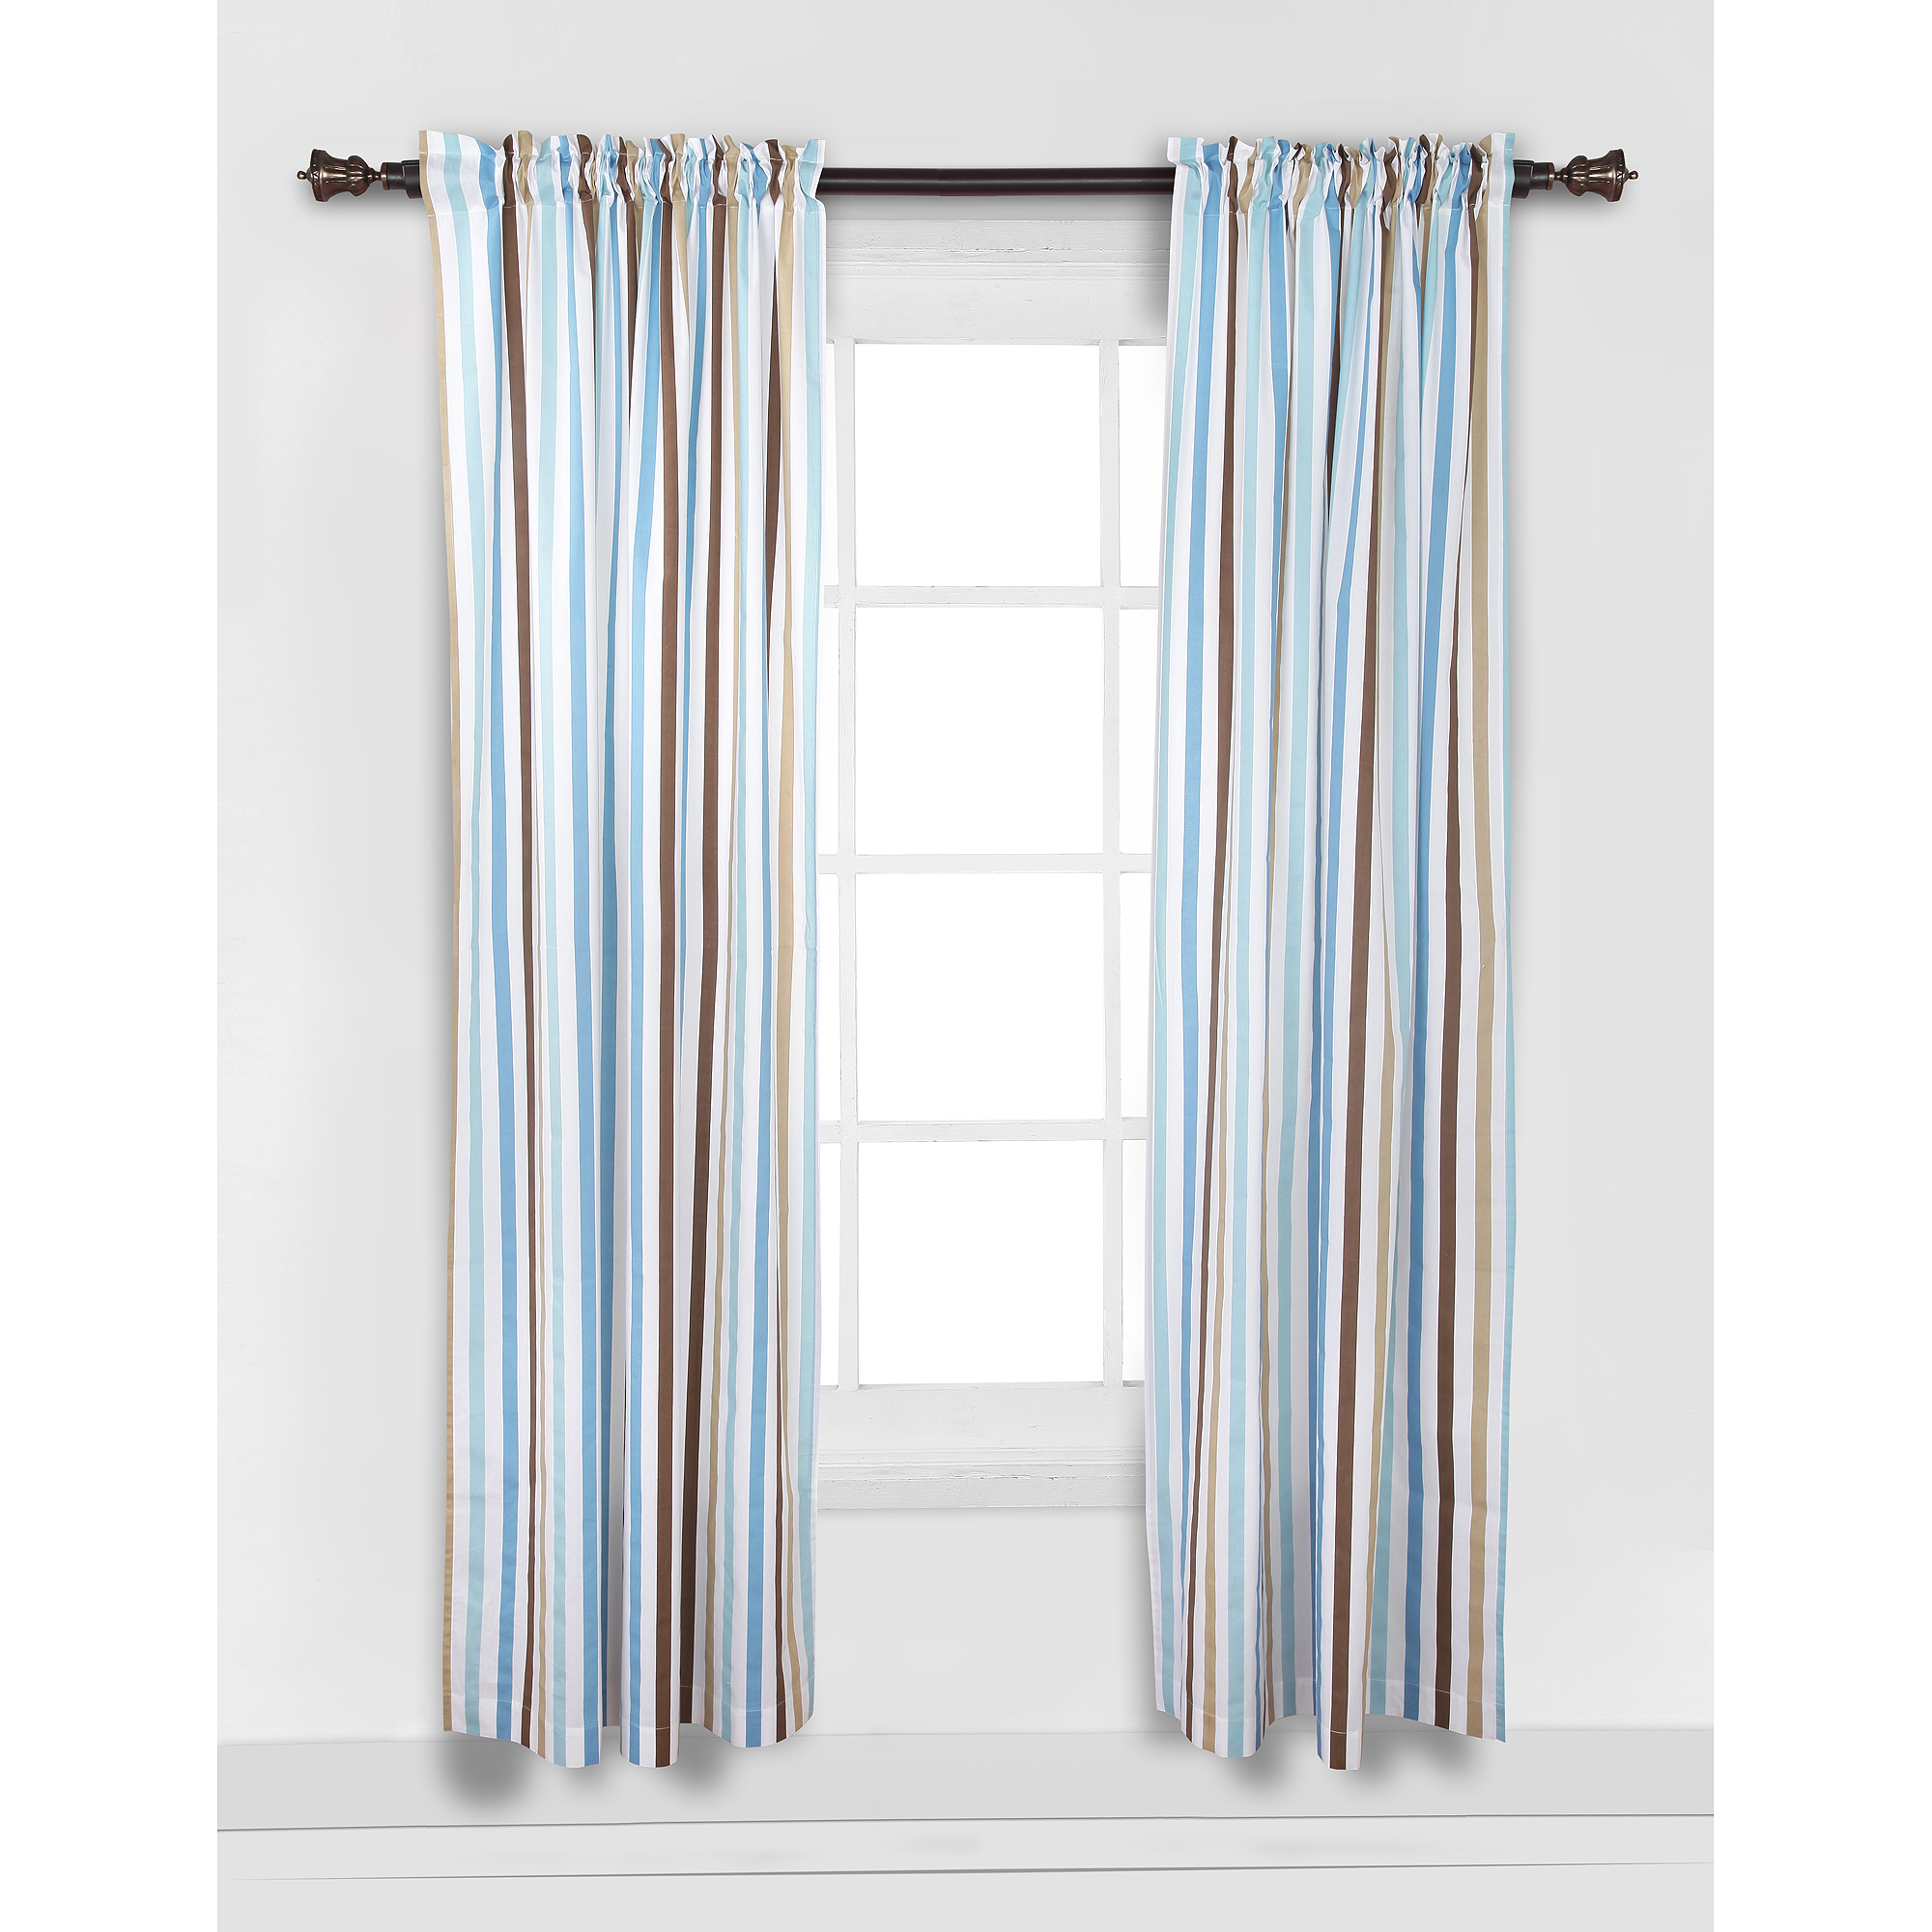 "Bacati Mod Diamonds and Stripes Curtain Panel 42""x84"" 100% Cotton percale fabrics, Aqua and Chocolate"